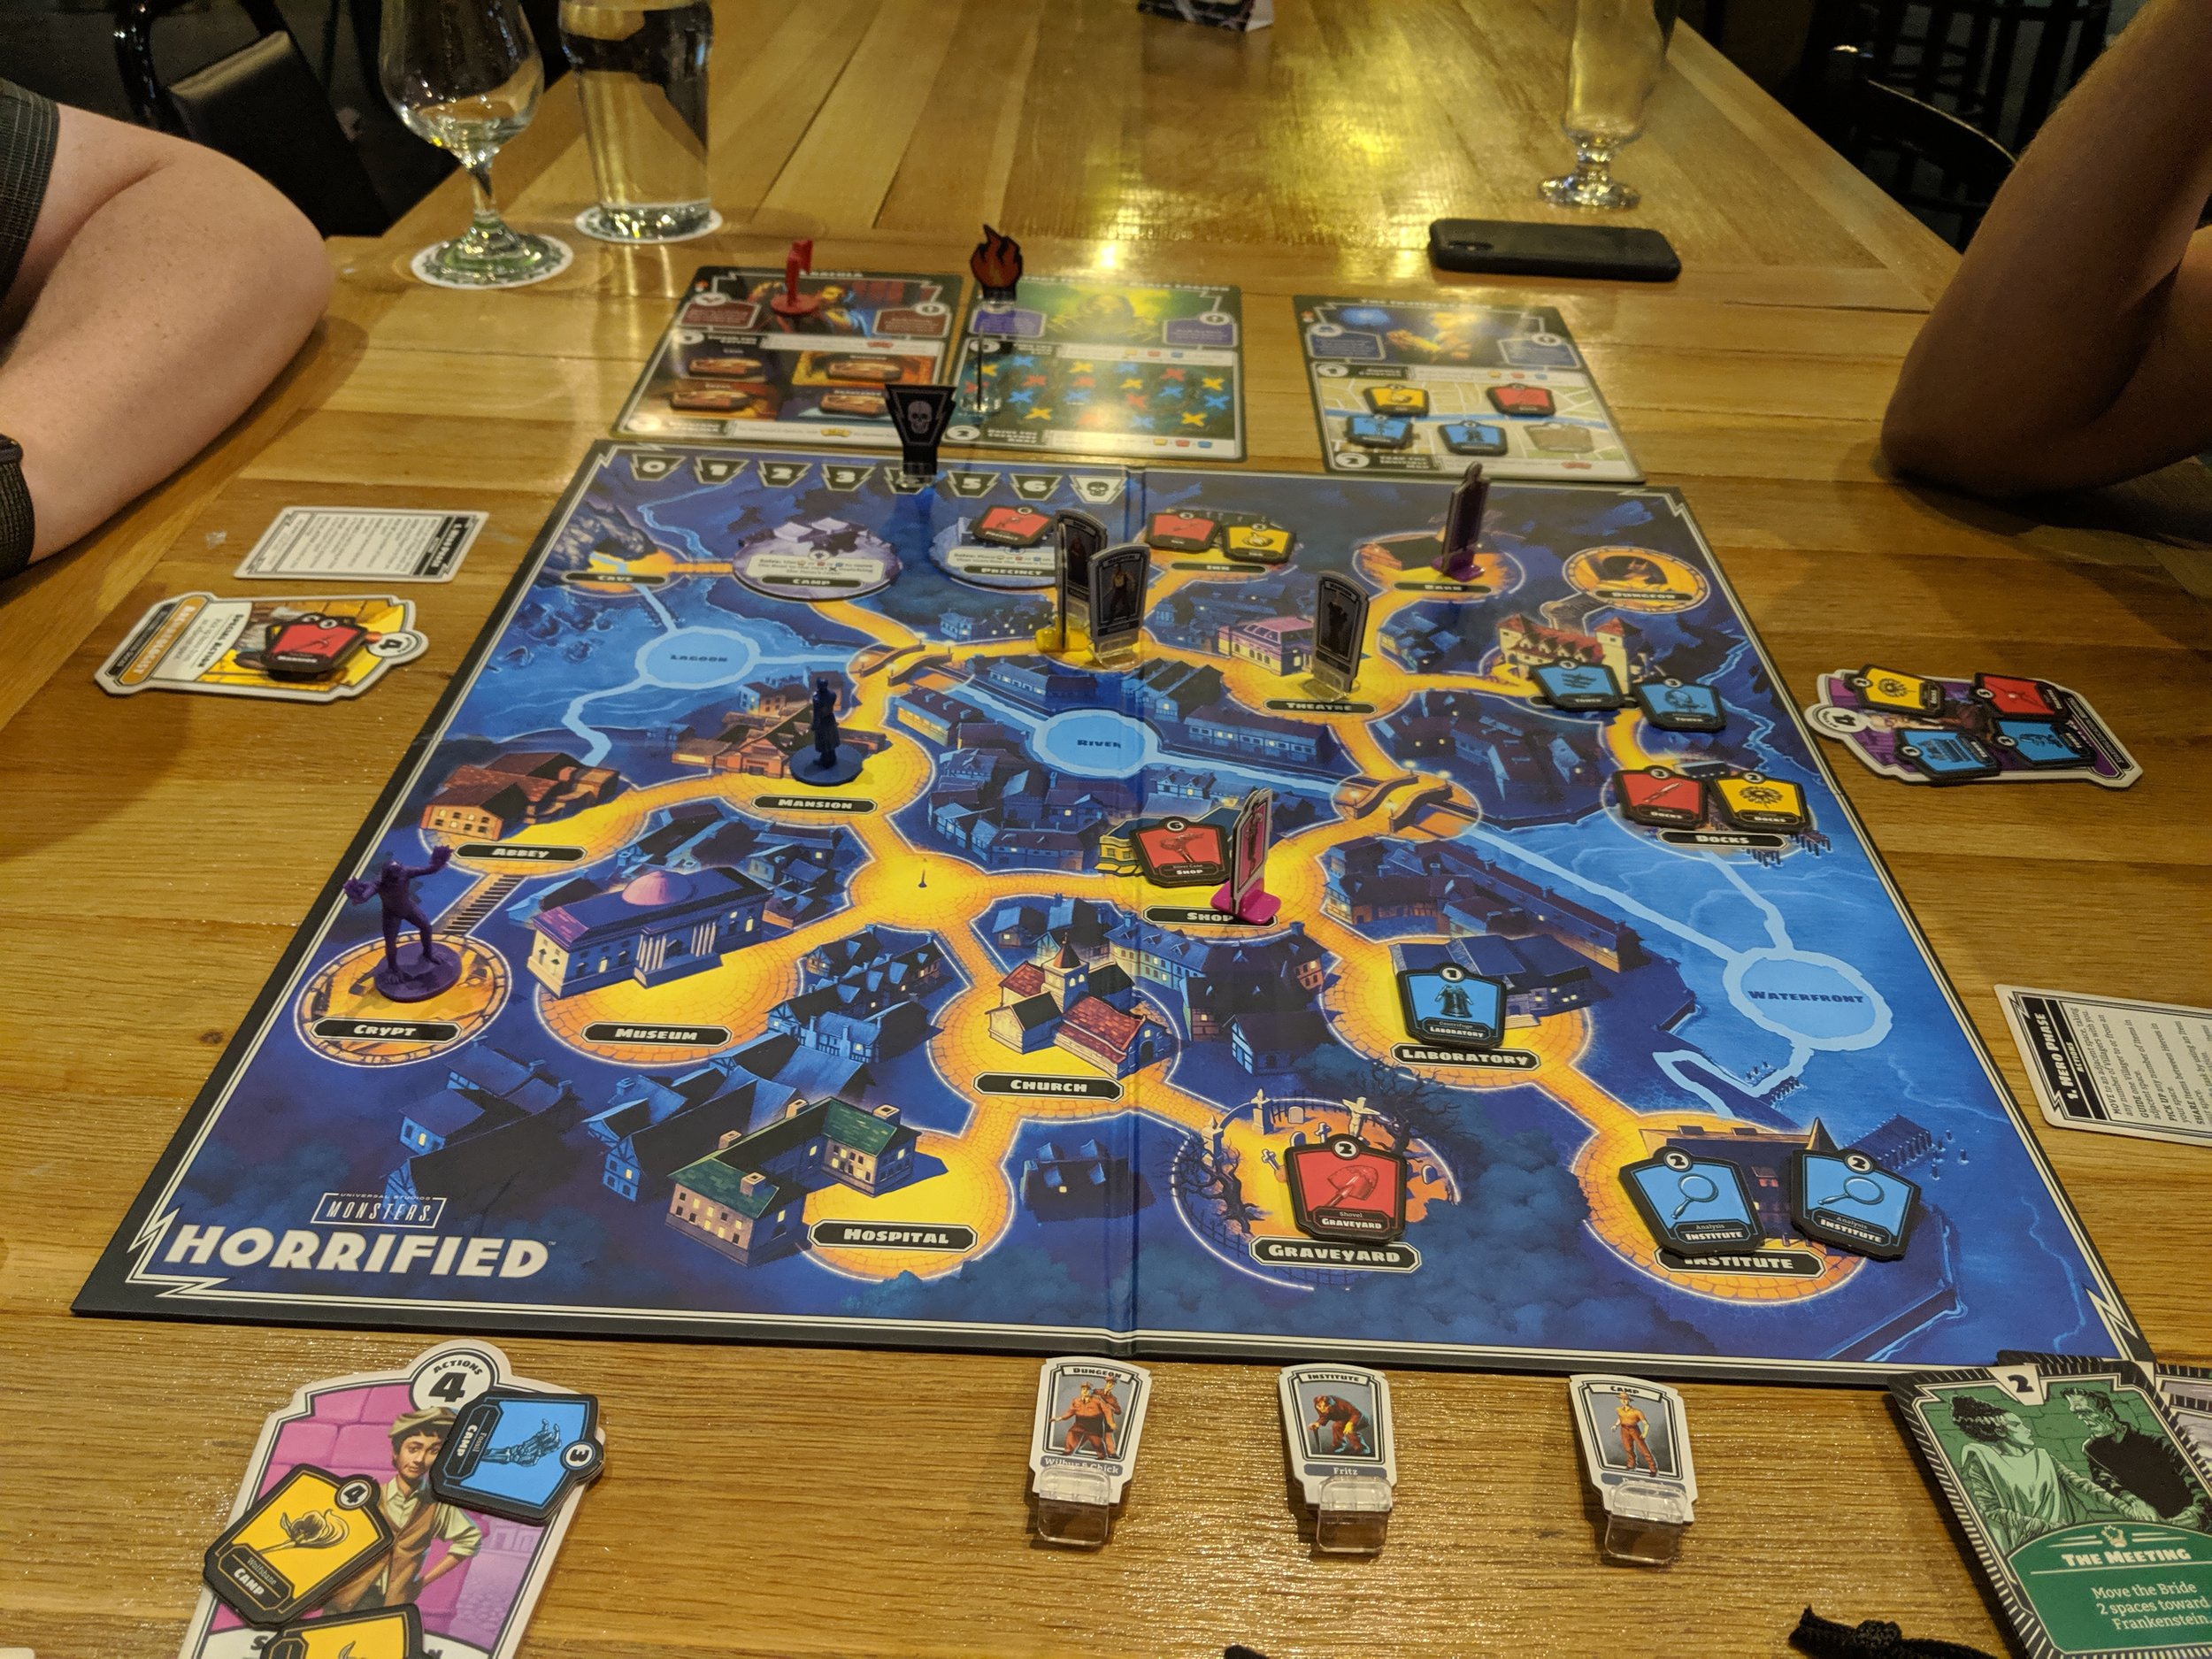 A three player game in process